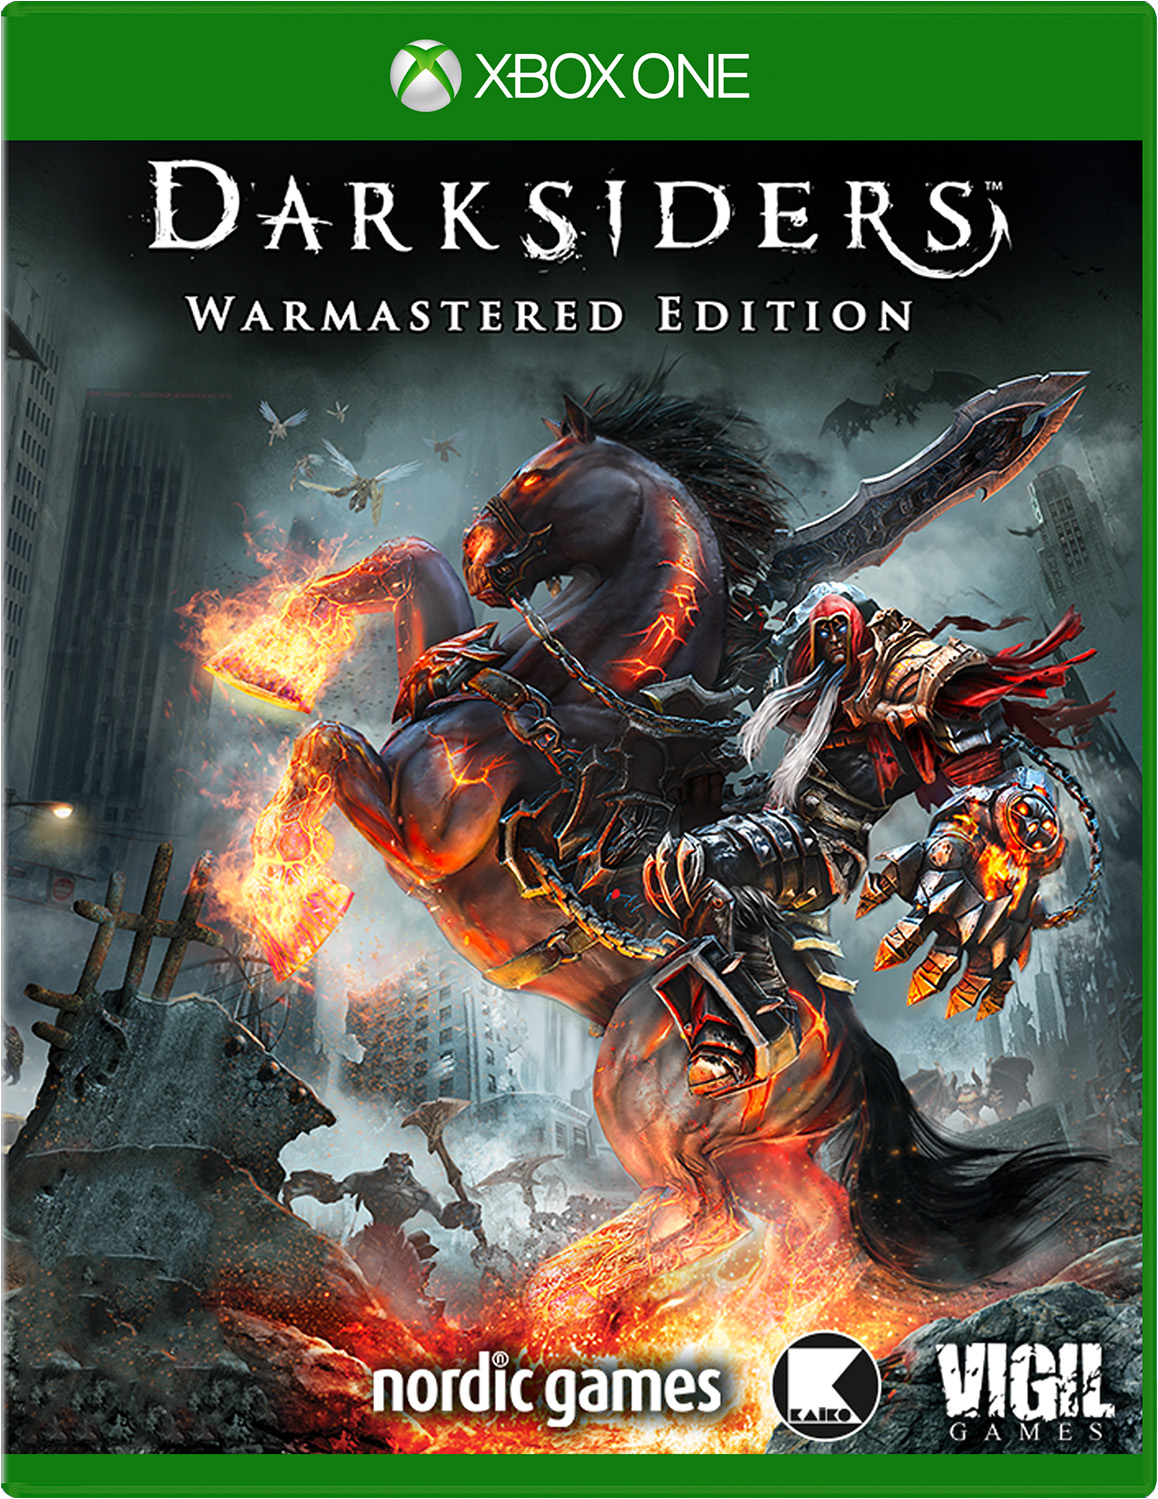 Darksiders: Warmastered Edition for Xbox One